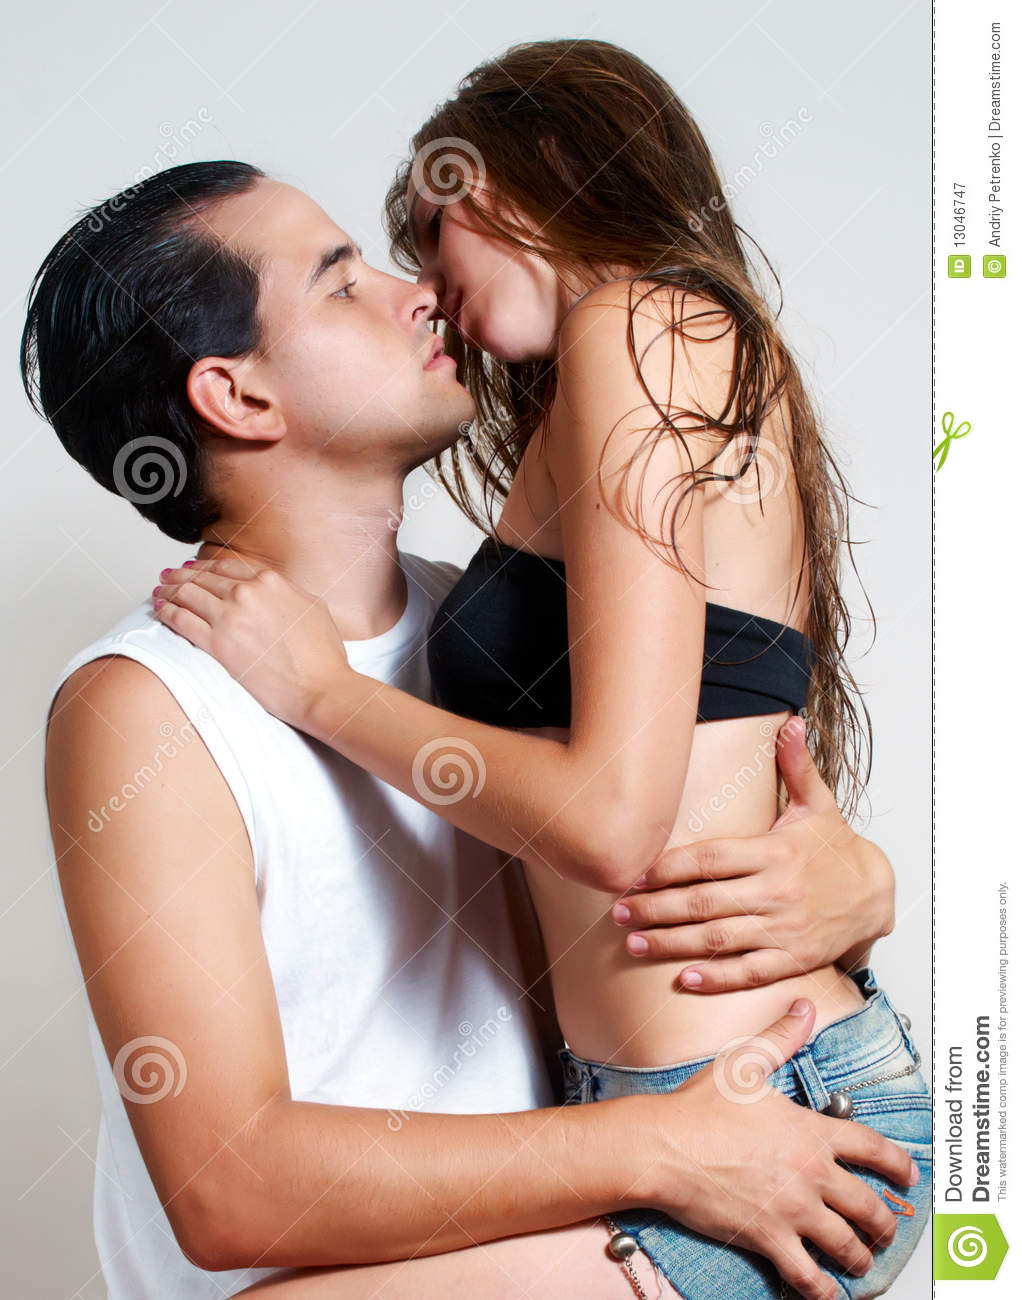 Couple foreplay videos